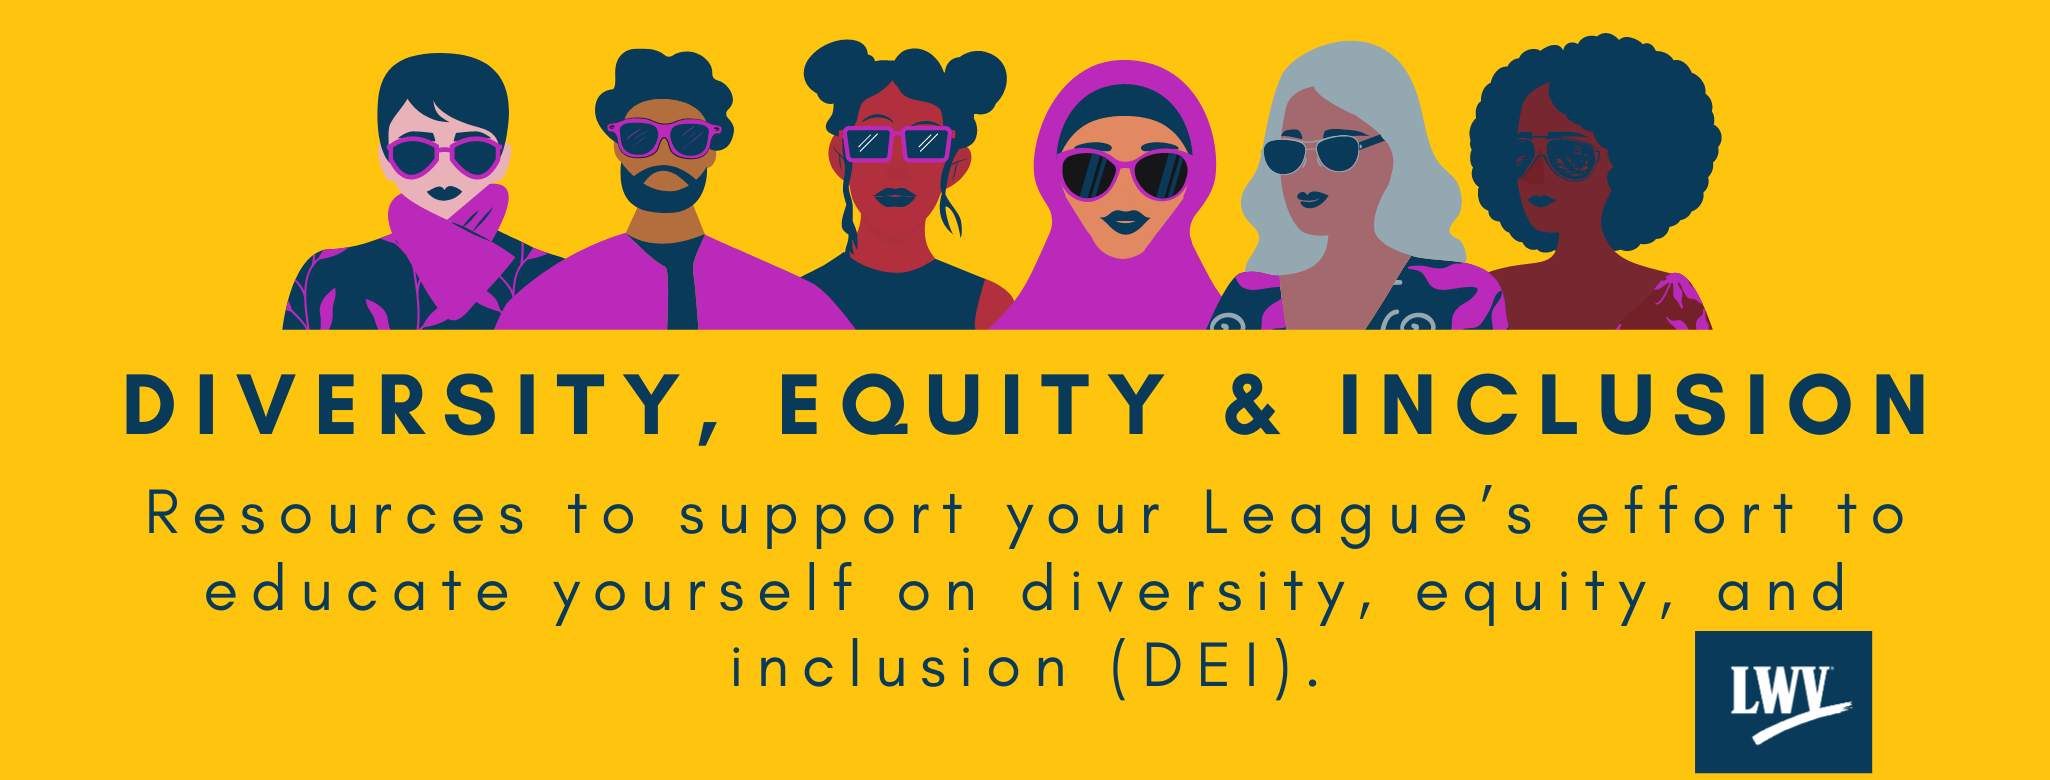 Facts About Diversity, Equity & Inclusion Uncovered